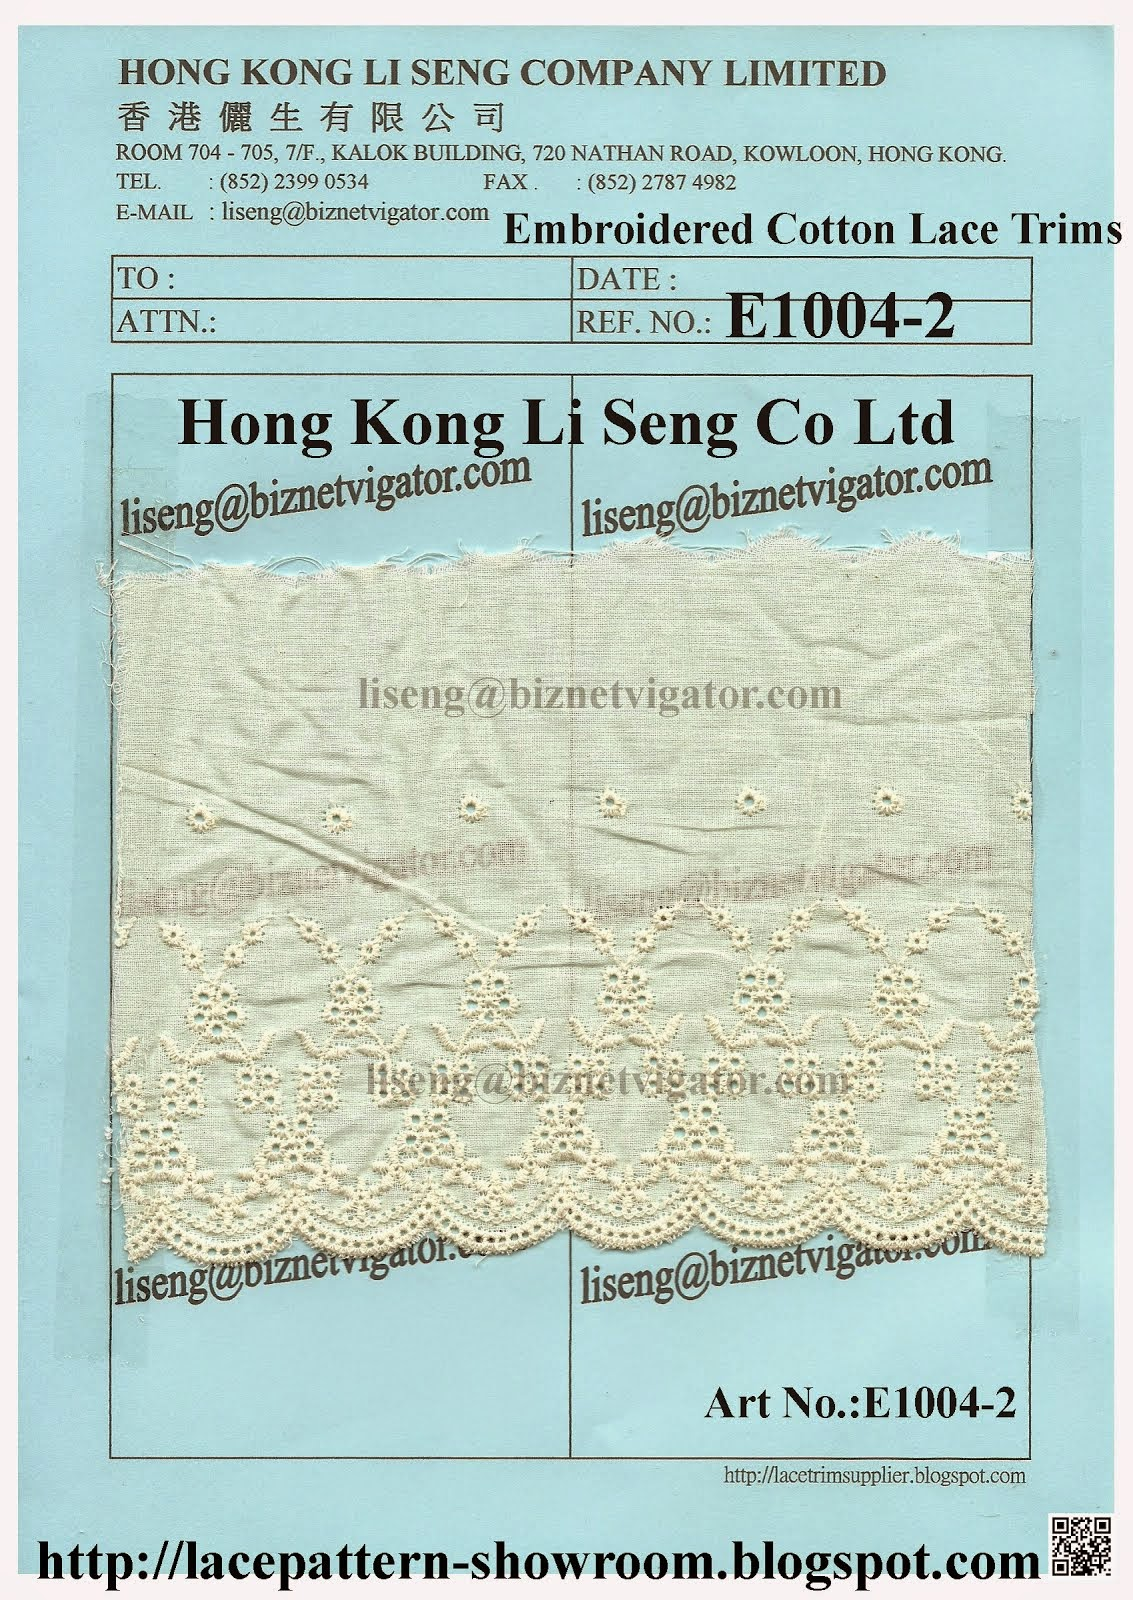 Simple Embroidered Cotton Lace Trims Manufacturer Wholesale and Supplier - Hong Kong Li Seng Co Ltd